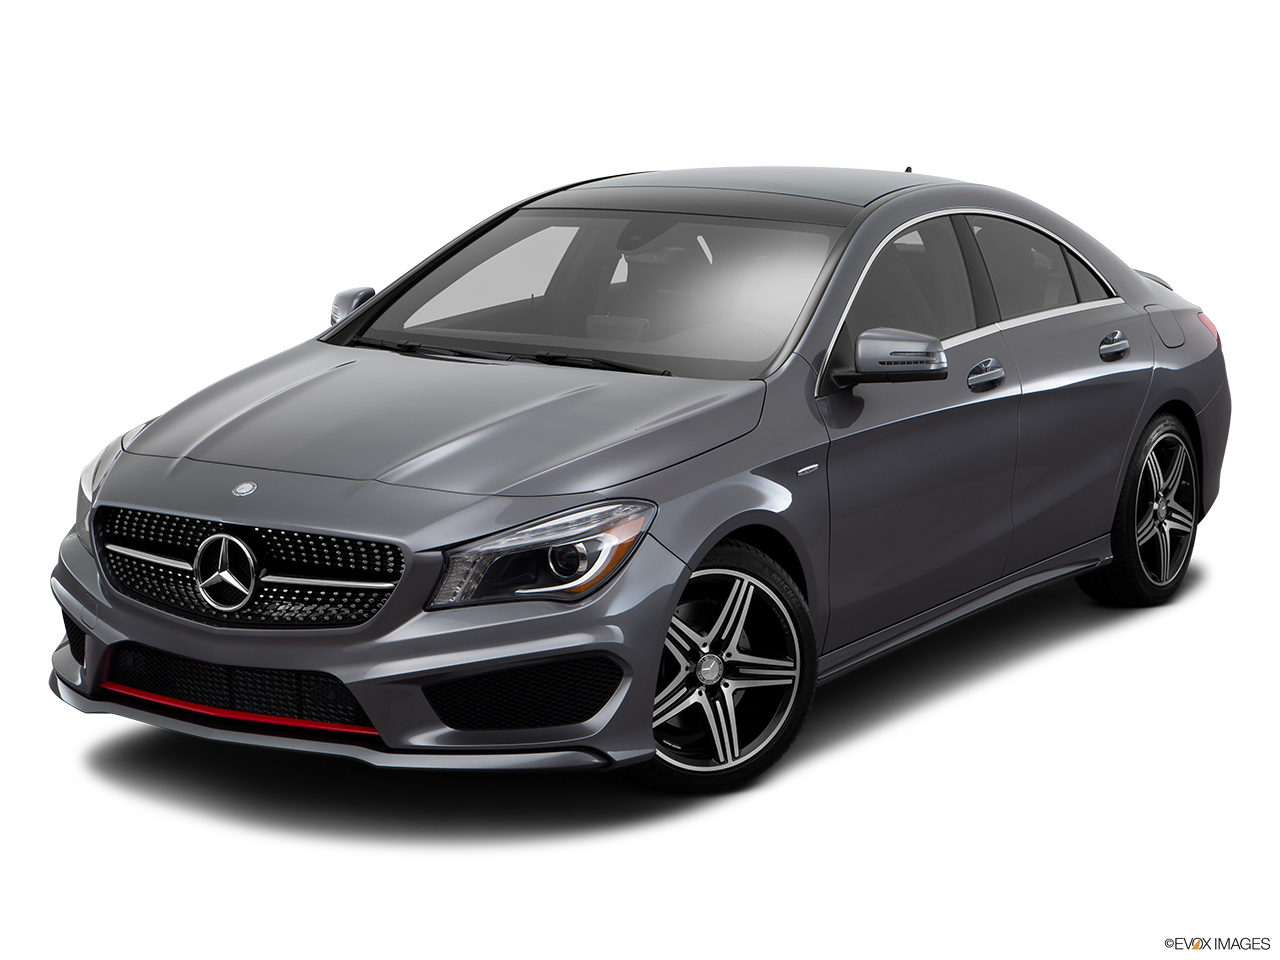 Mercedes benz cla class 2016 cla 250 in kuwait new car for Mercedes benz cls 250 price